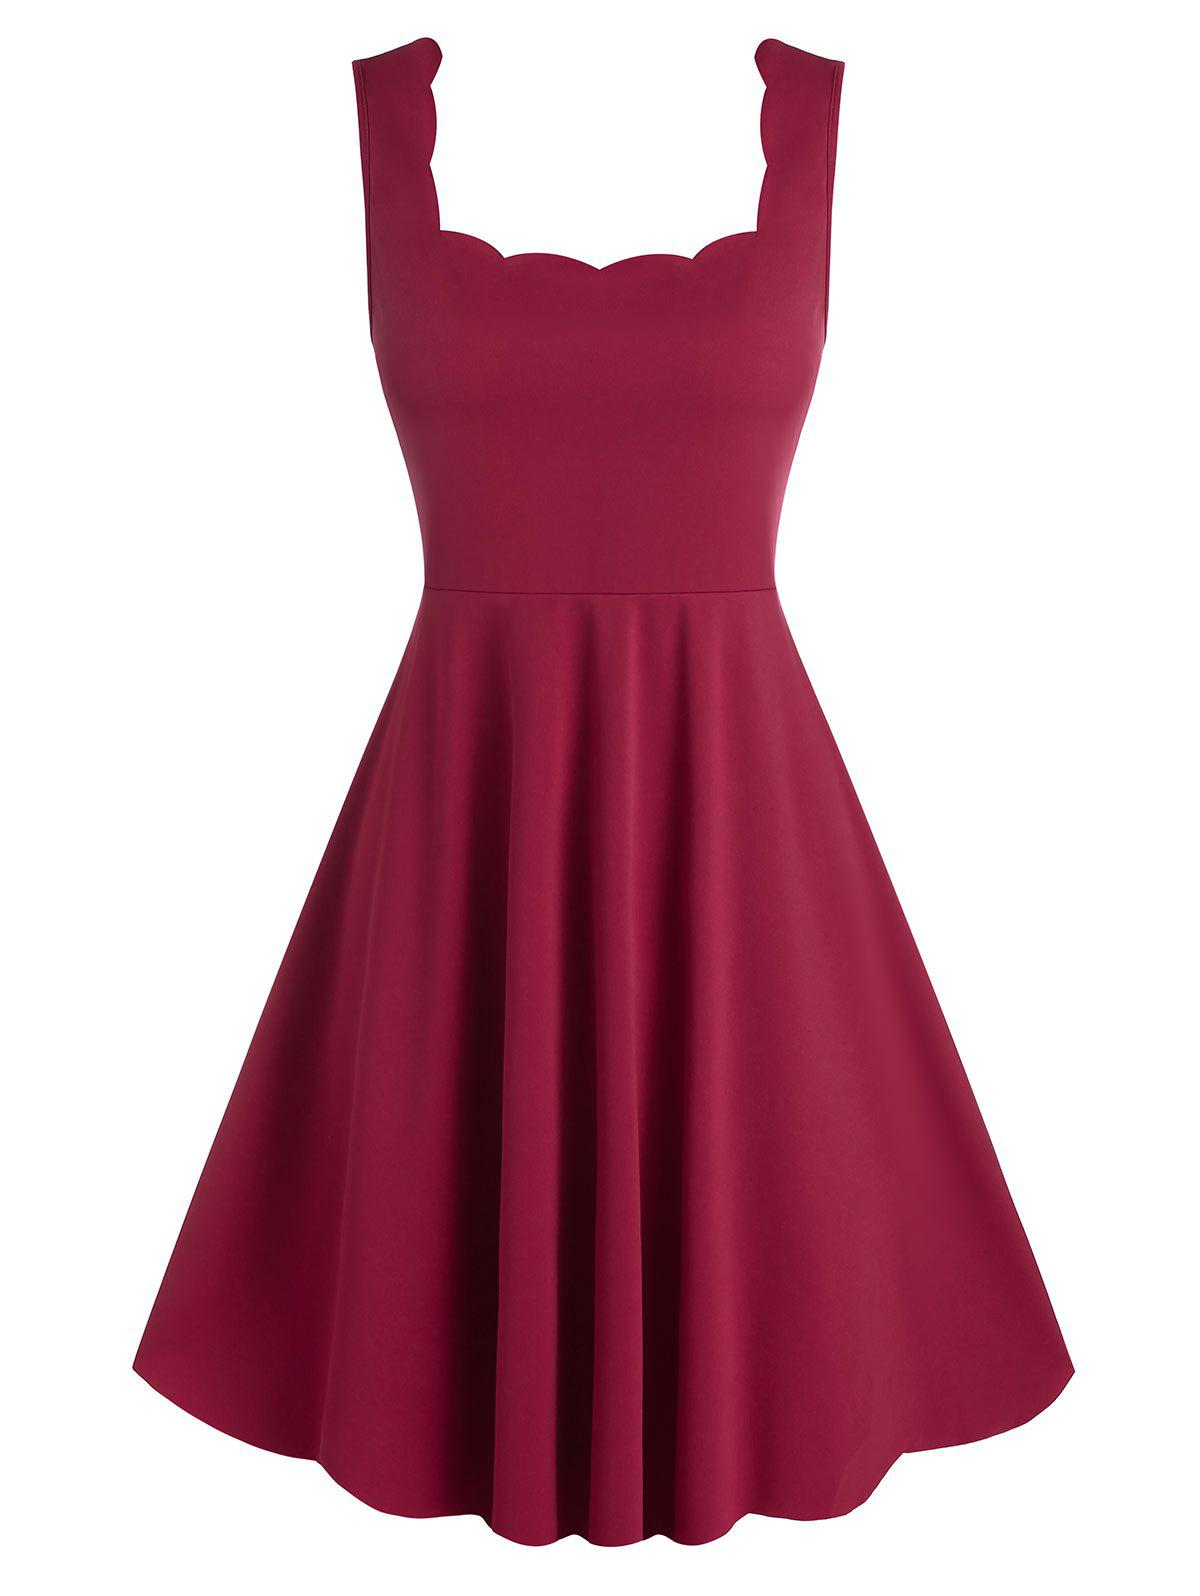 Sleeveless Square Neck Scalloped Flare Dress - RED WINE 3XL